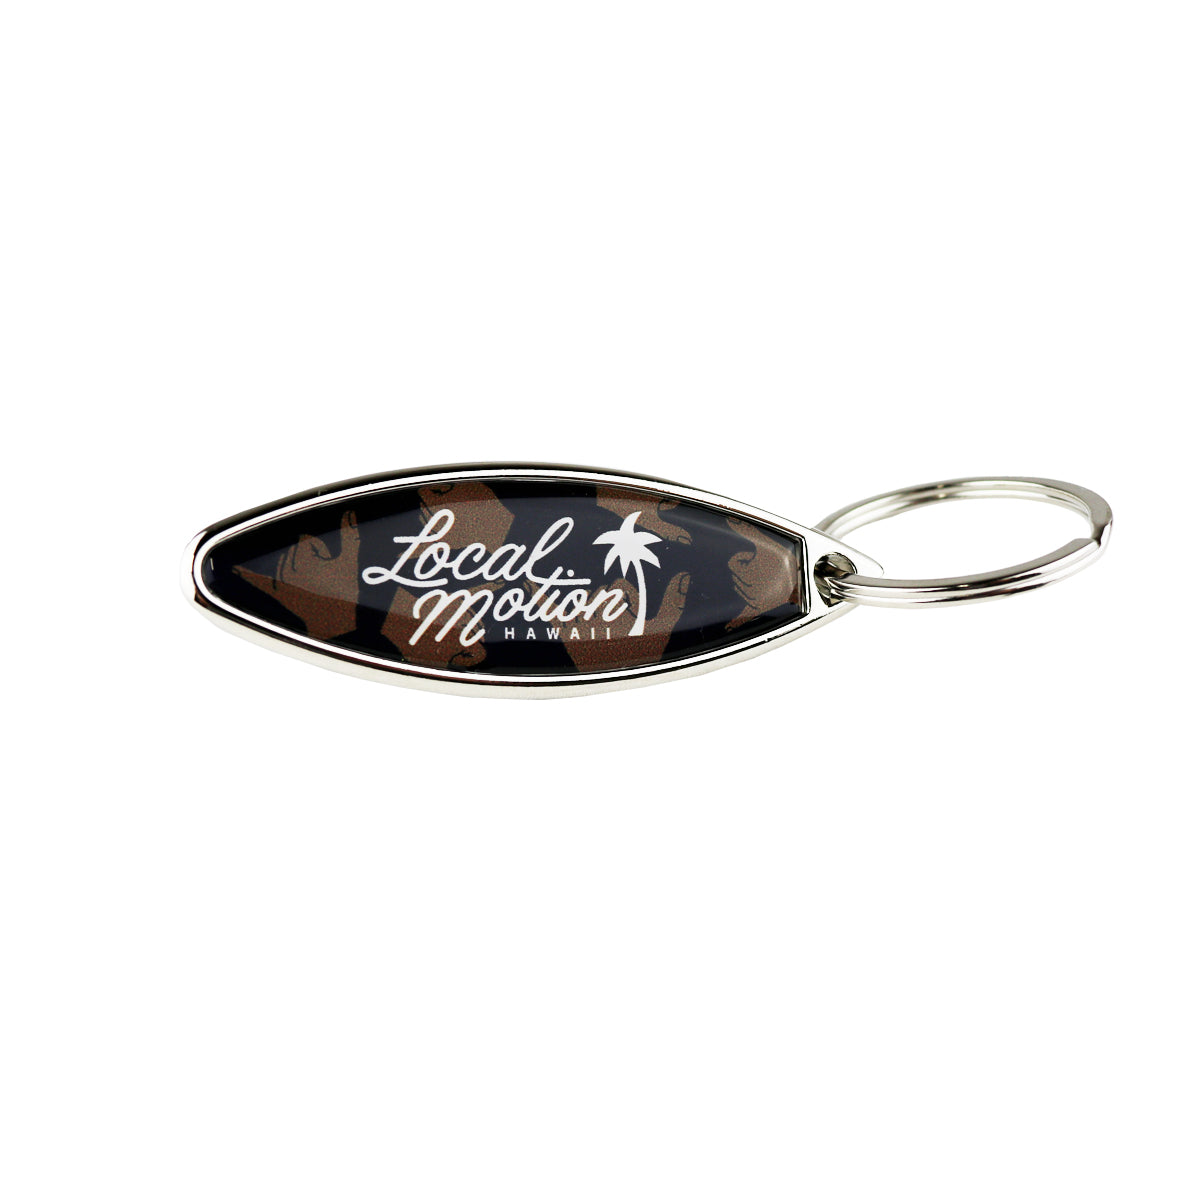 SHAKA CHROME BOTTLE OPENER (ABTLMH192)